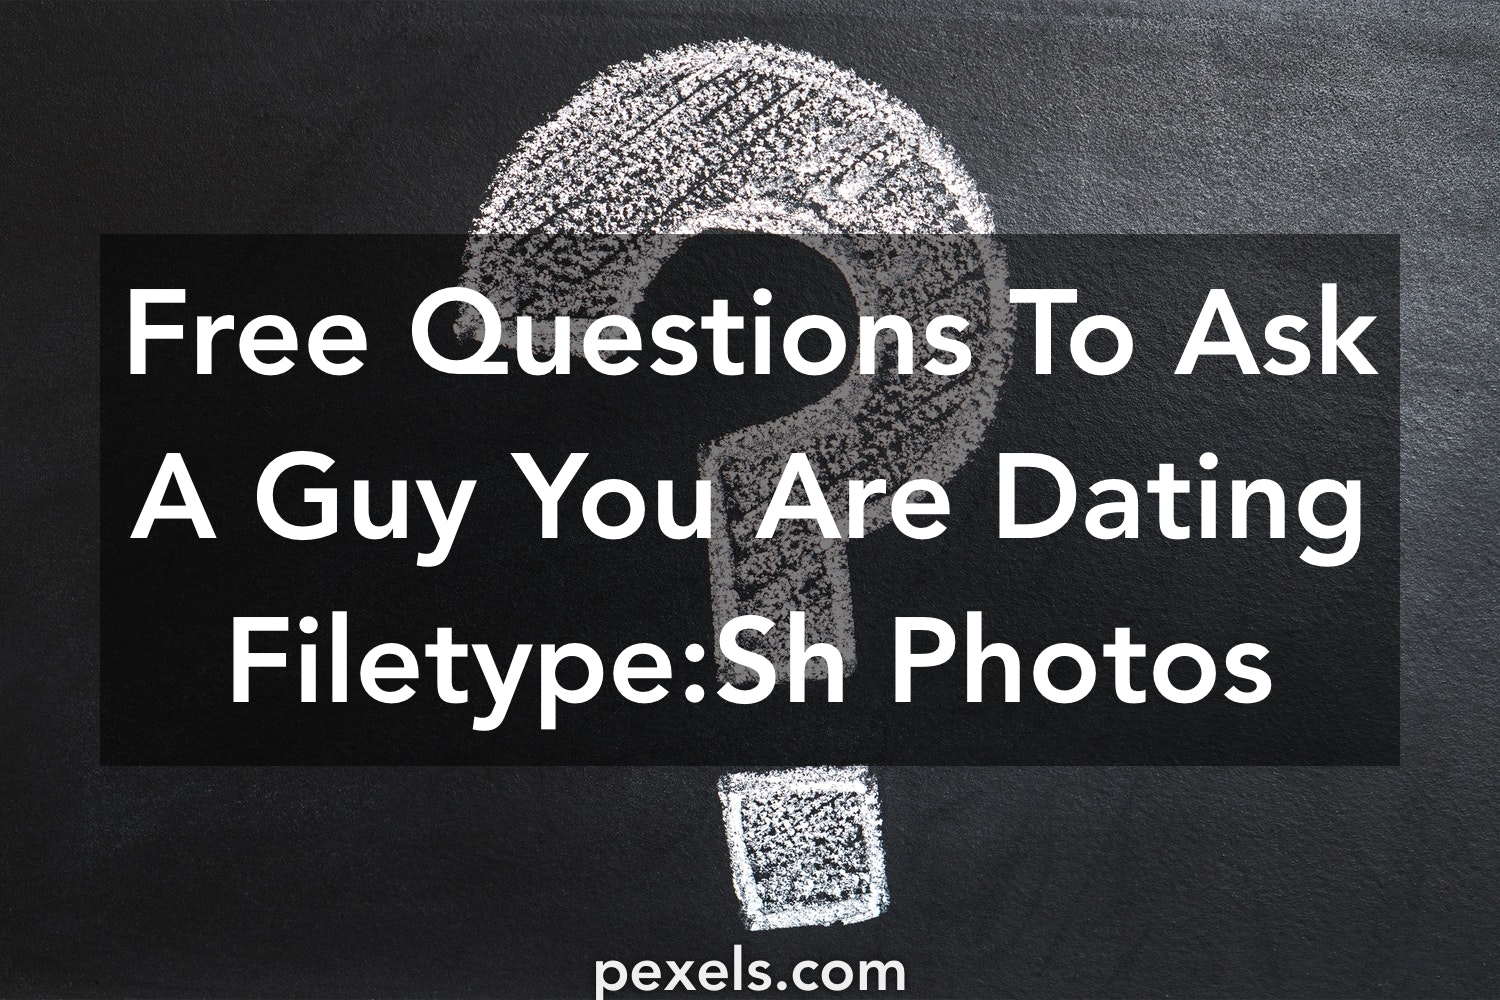 Interesting questions to ask a guy youre dating